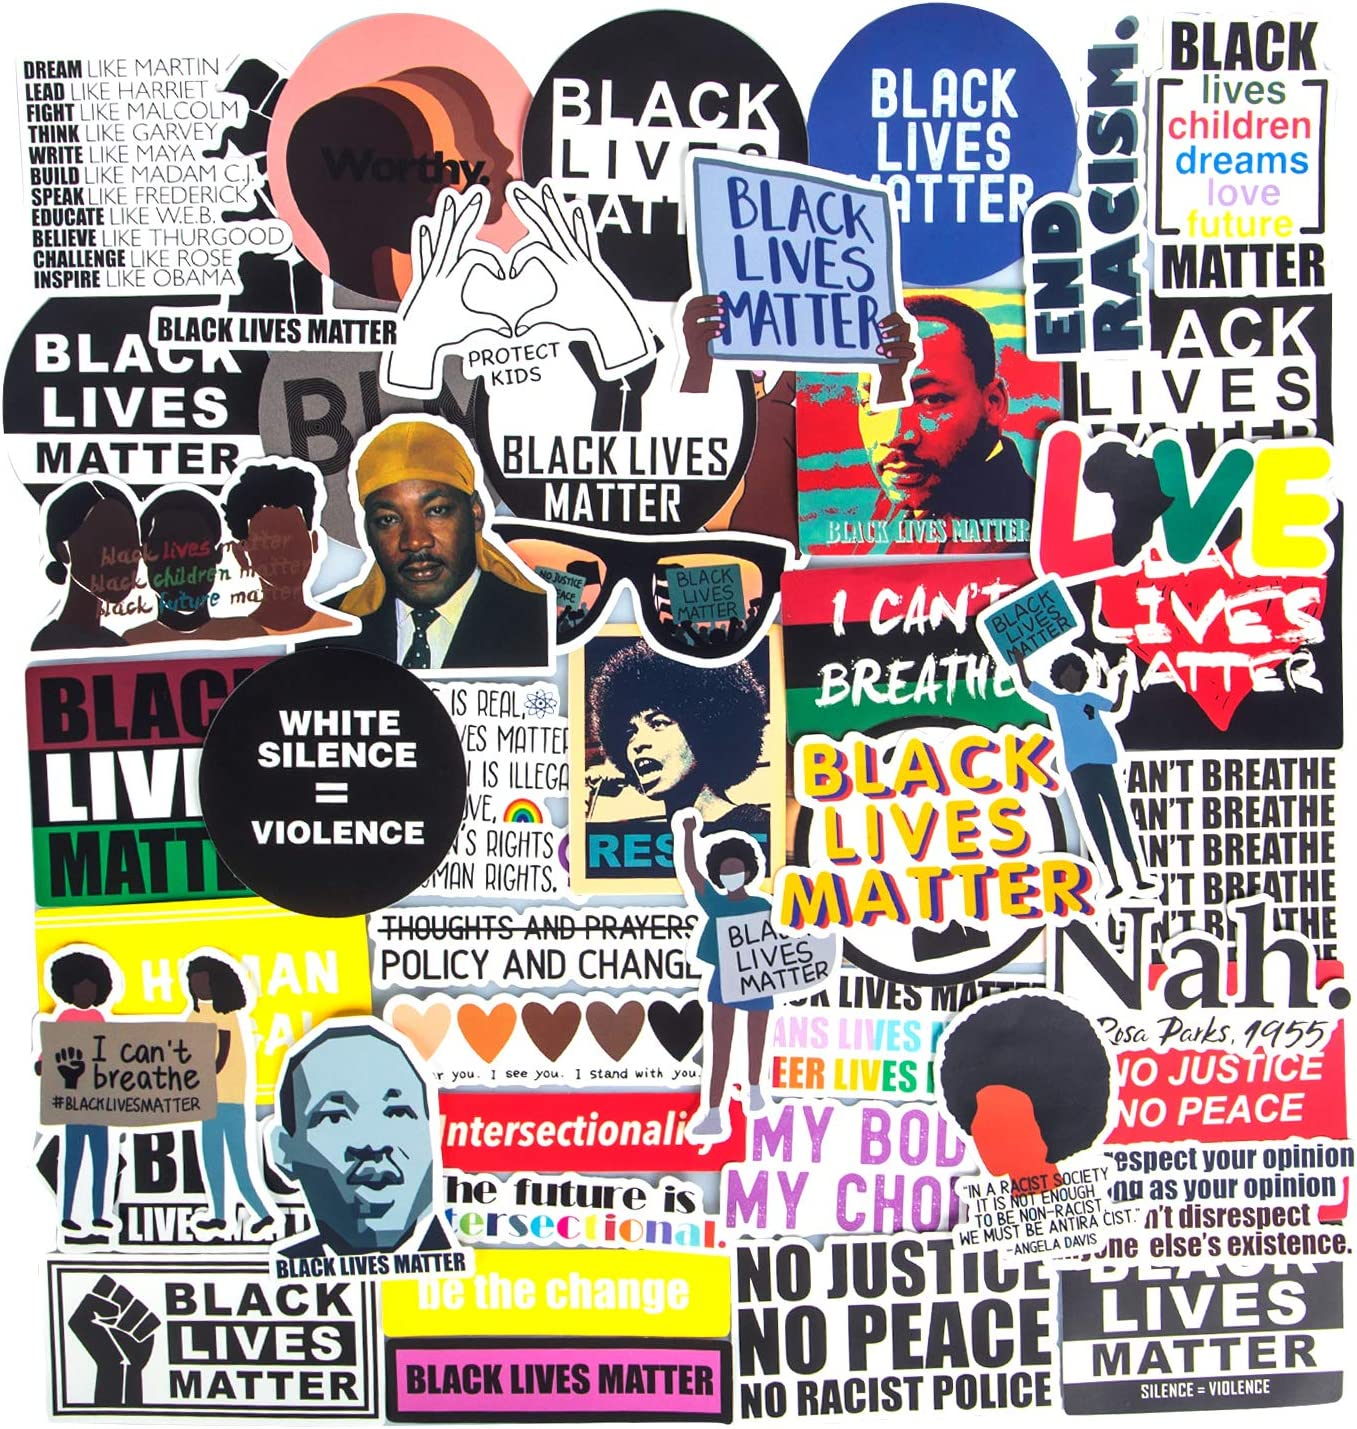 Black Lives Matter Stickers, 50PCS Black Rights Defender Stickers African Americans Laptop Stickers ACLU Women Rights Water Bottles Stickers for Bumper Vinyl Waterproof Computer Stickers